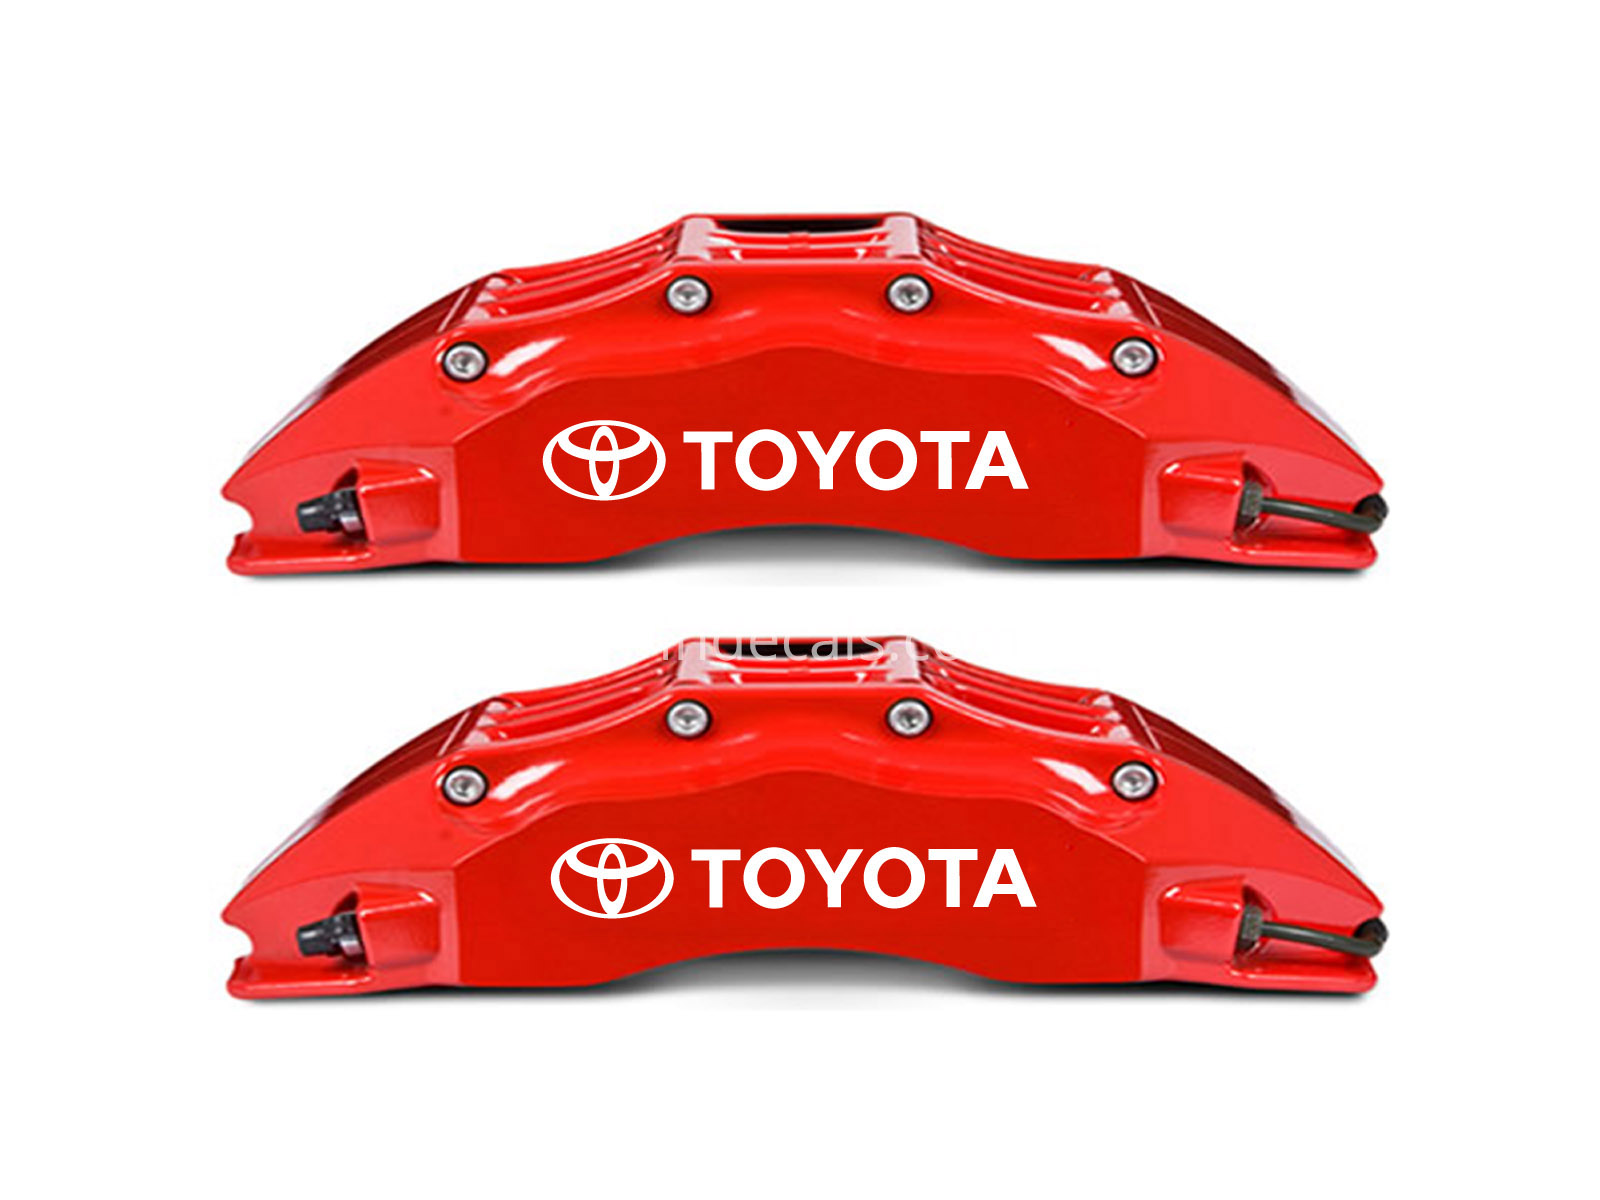 6 x Toyota Stickers for Brakes - White